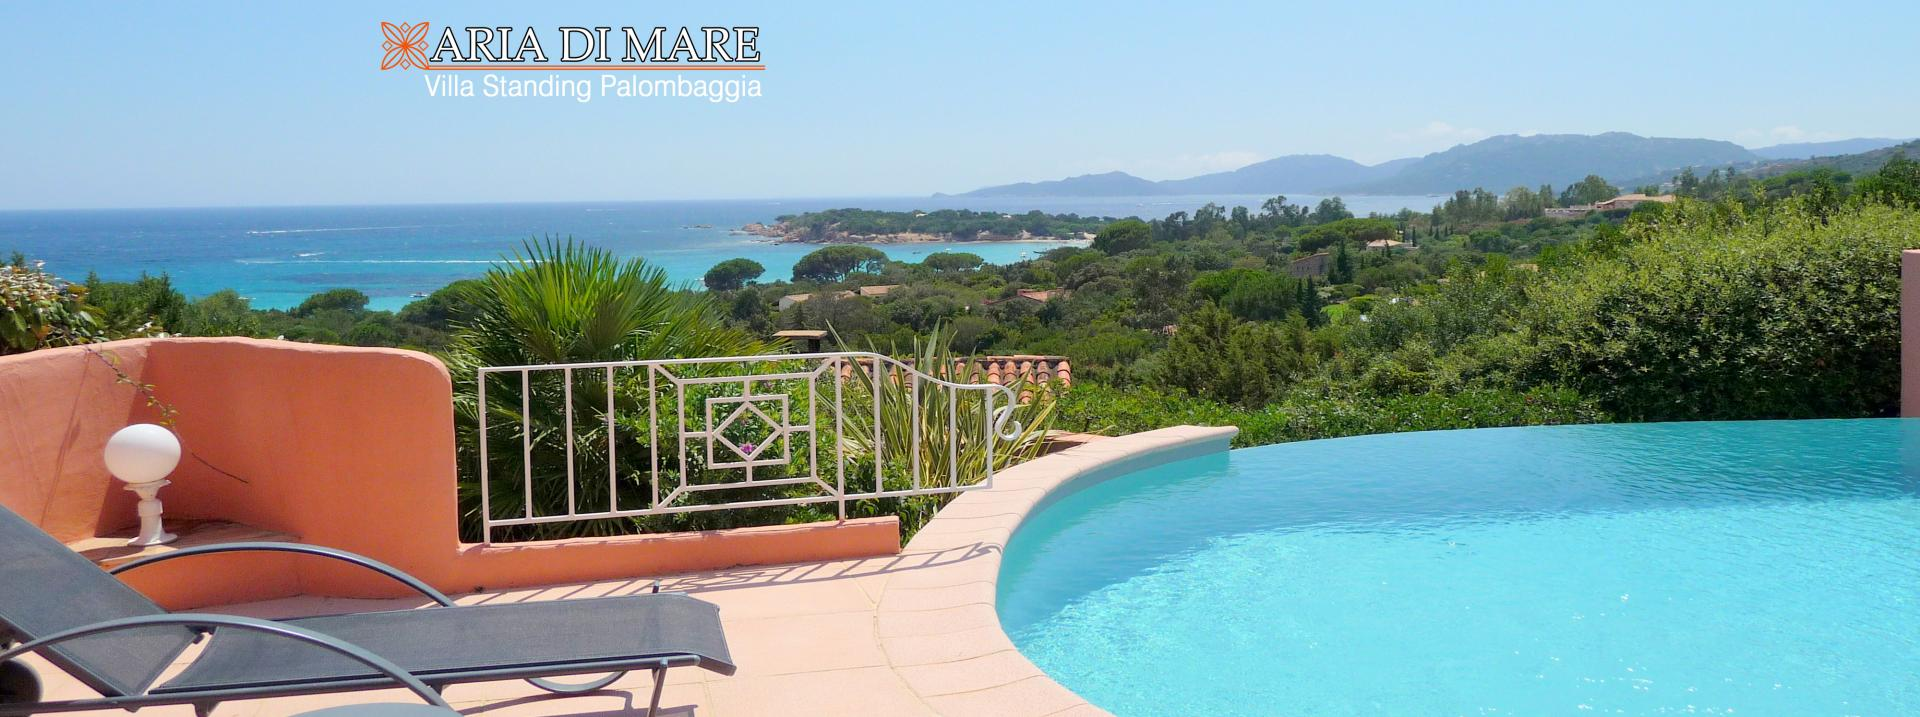 location villa palombaggia villa luxe avec piscine porto vecchio villa bord de mer. Black Bedroom Furniture Sets. Home Design Ideas